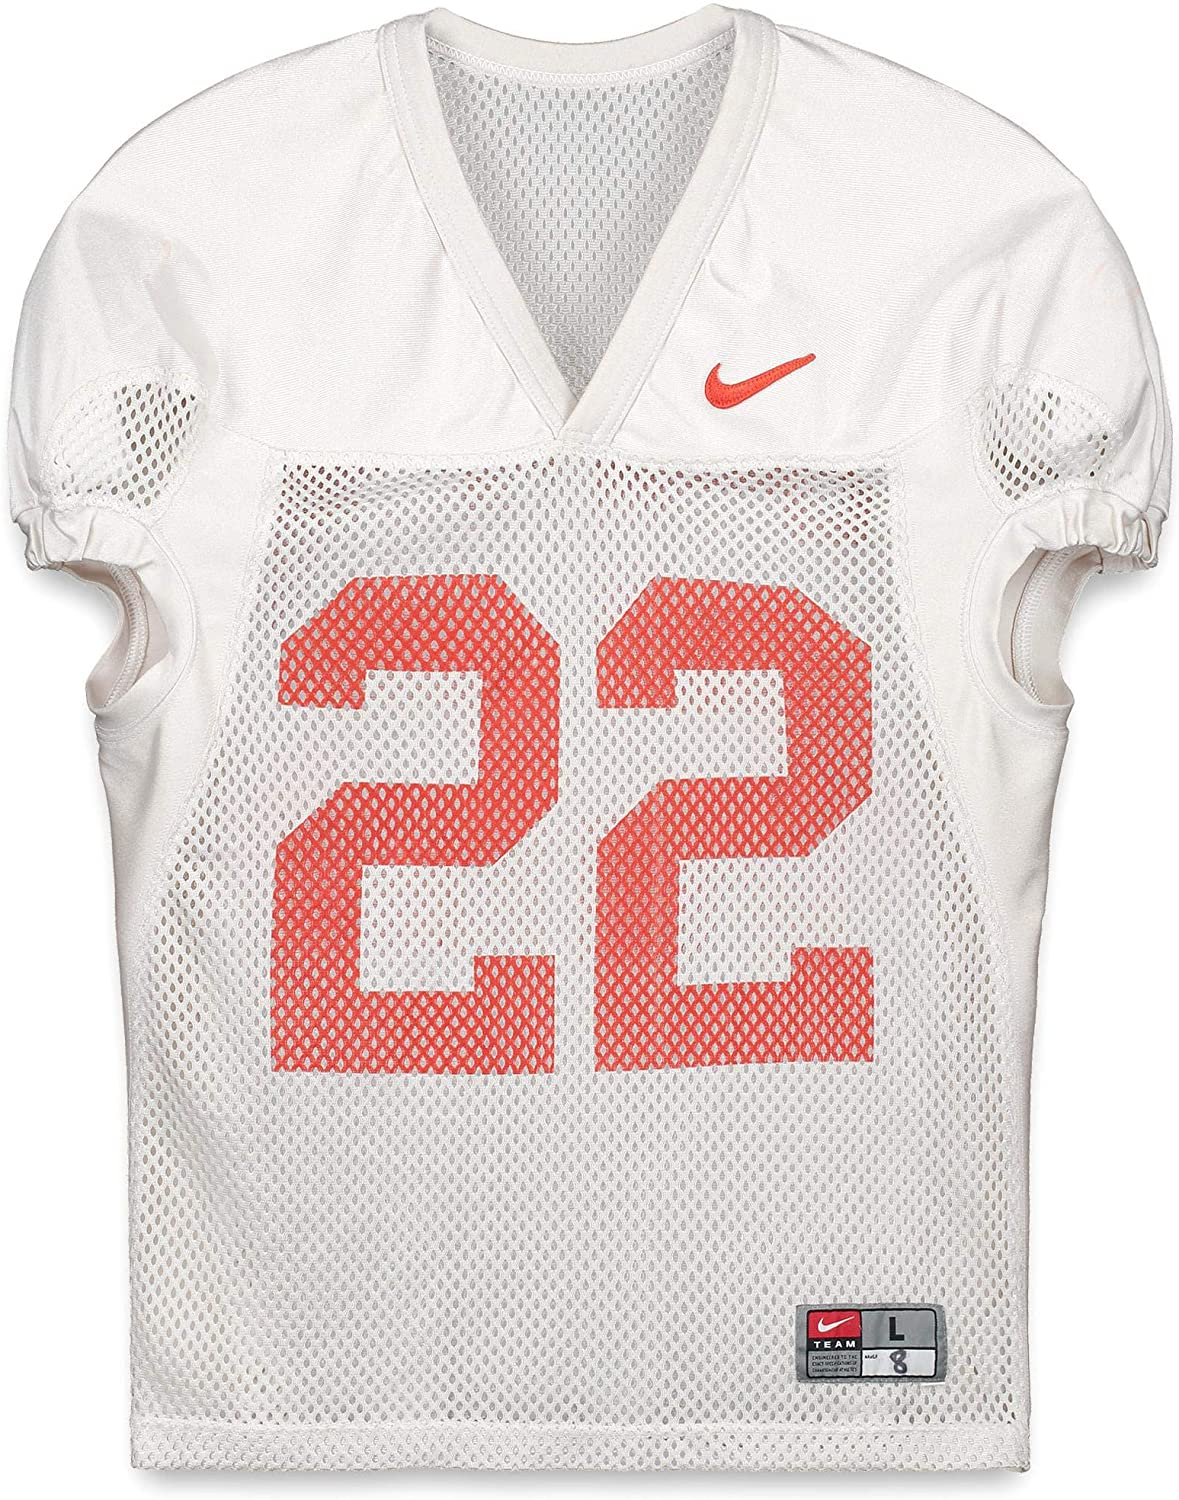 Clemson Tigers Practice-Used #22 White Jersey from the 2015-17 Football Seasons - Fanatics Authentic Certified